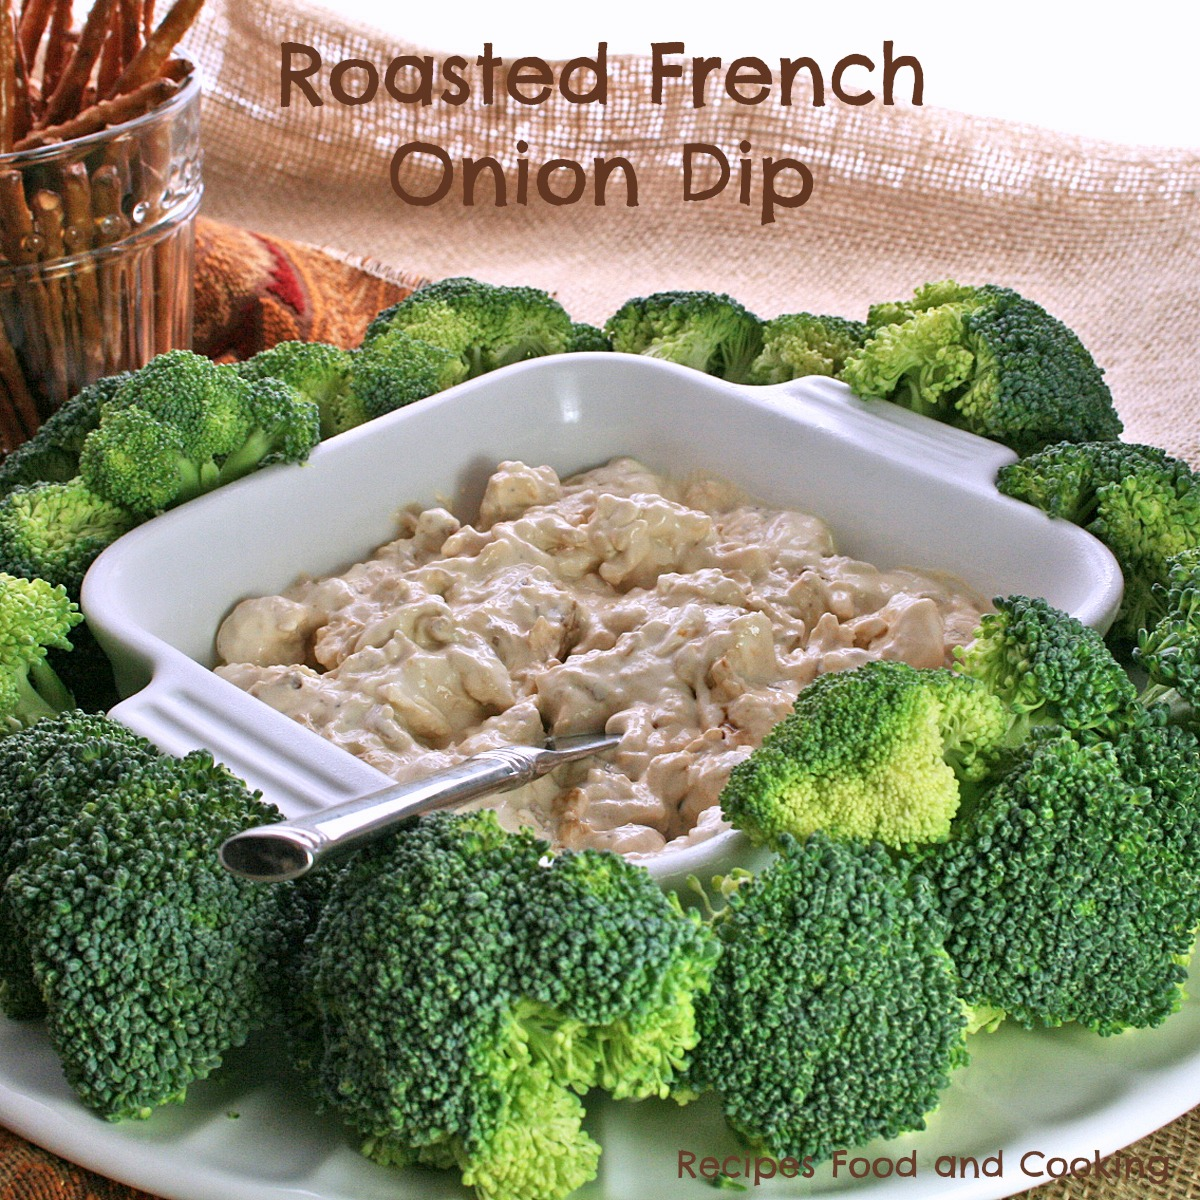 Roasted French Onion Dip